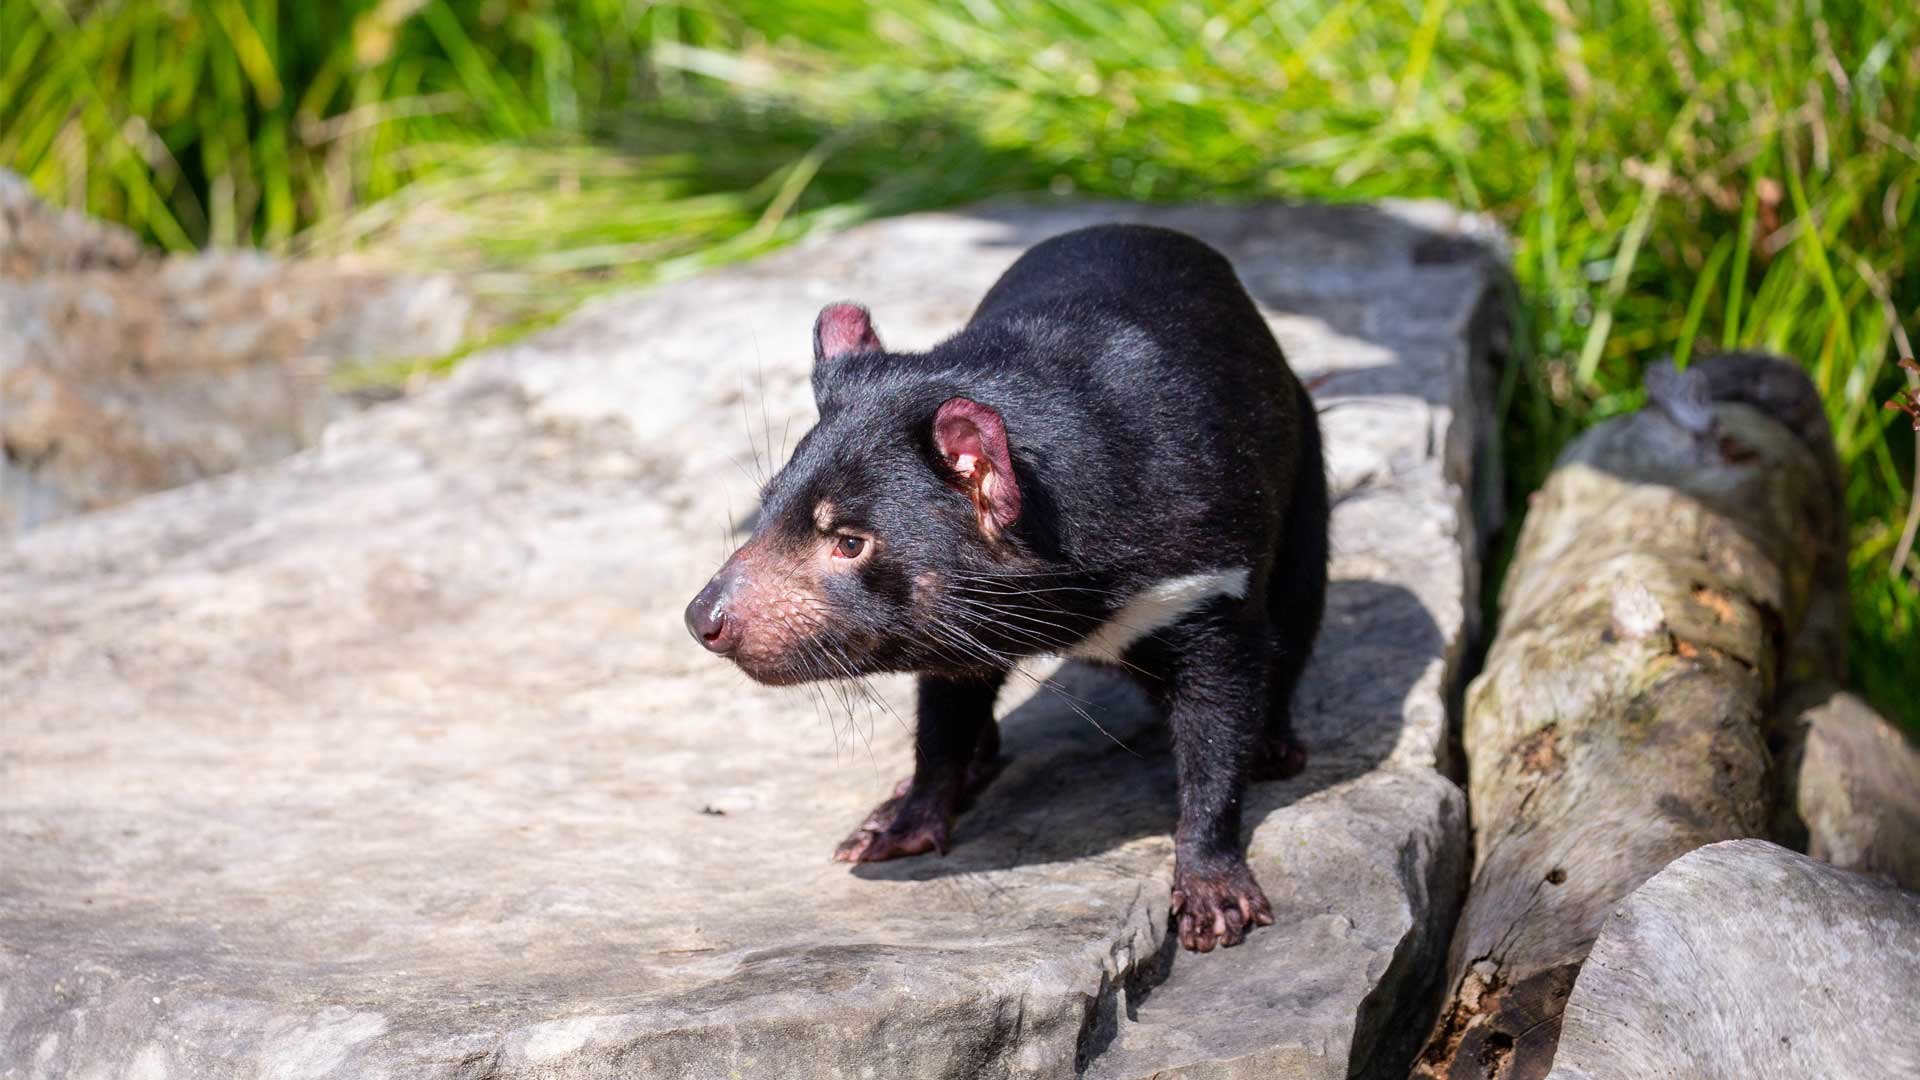 https://rfacdn.nz/zoo/assets/media/new-tassie-devils-gallery-2.jpg